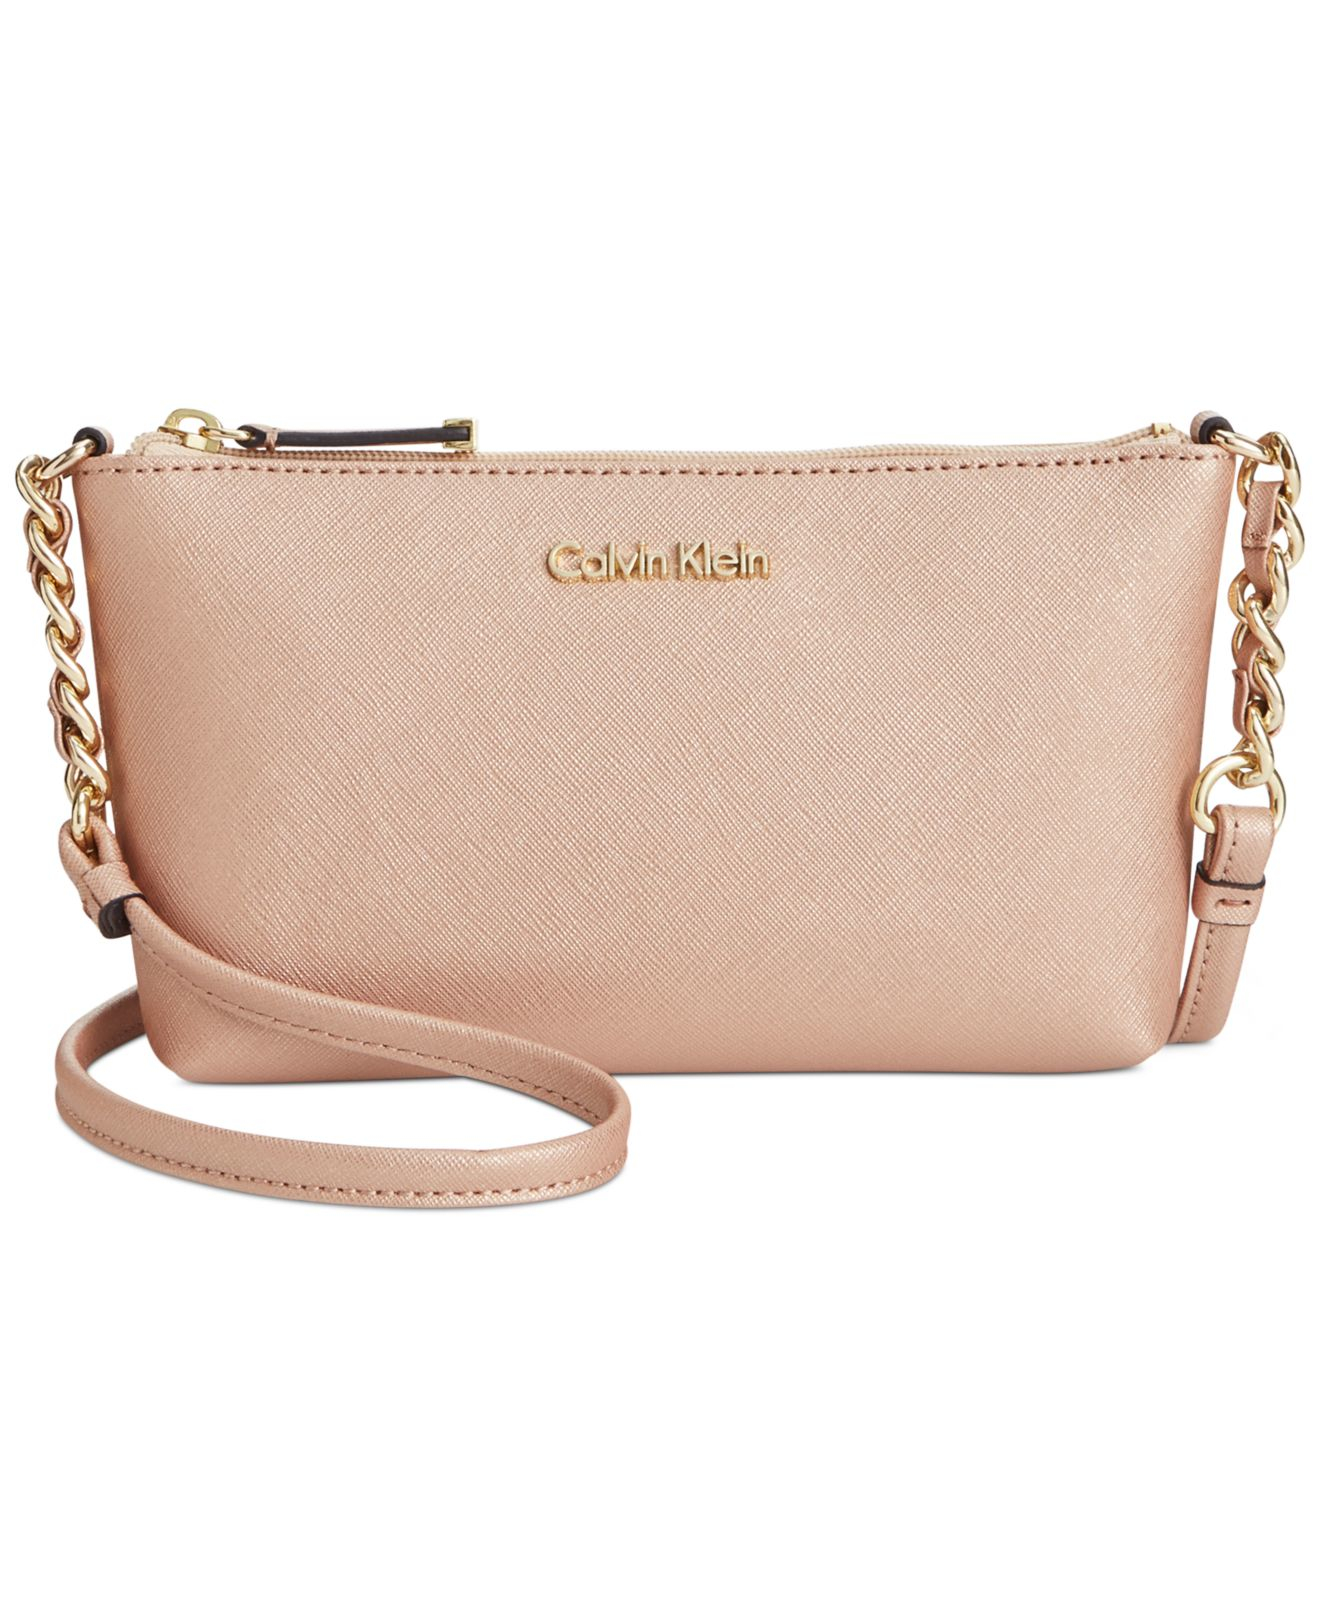 Shop now for the latest styles of women's handbags. StyleWe offers high quality handbags for women at huge discount.